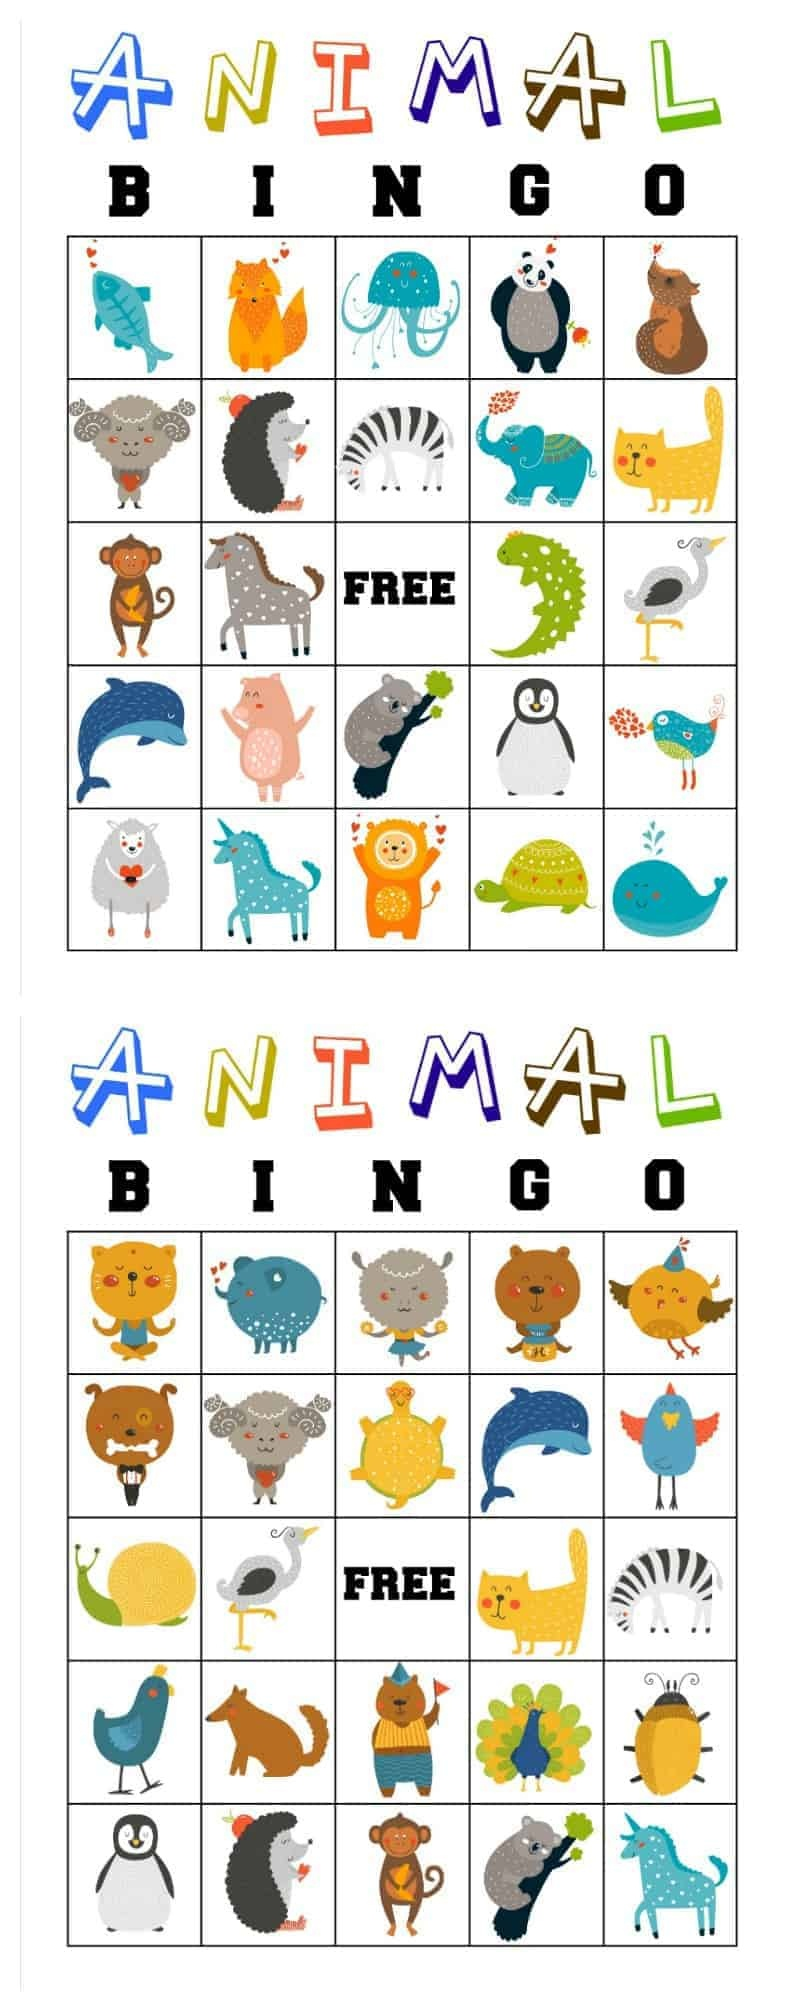 Free Printable Animal Bingo Cards For Toddlers And Preschoolers - Free Printable Bible Bingo For Preschoolers